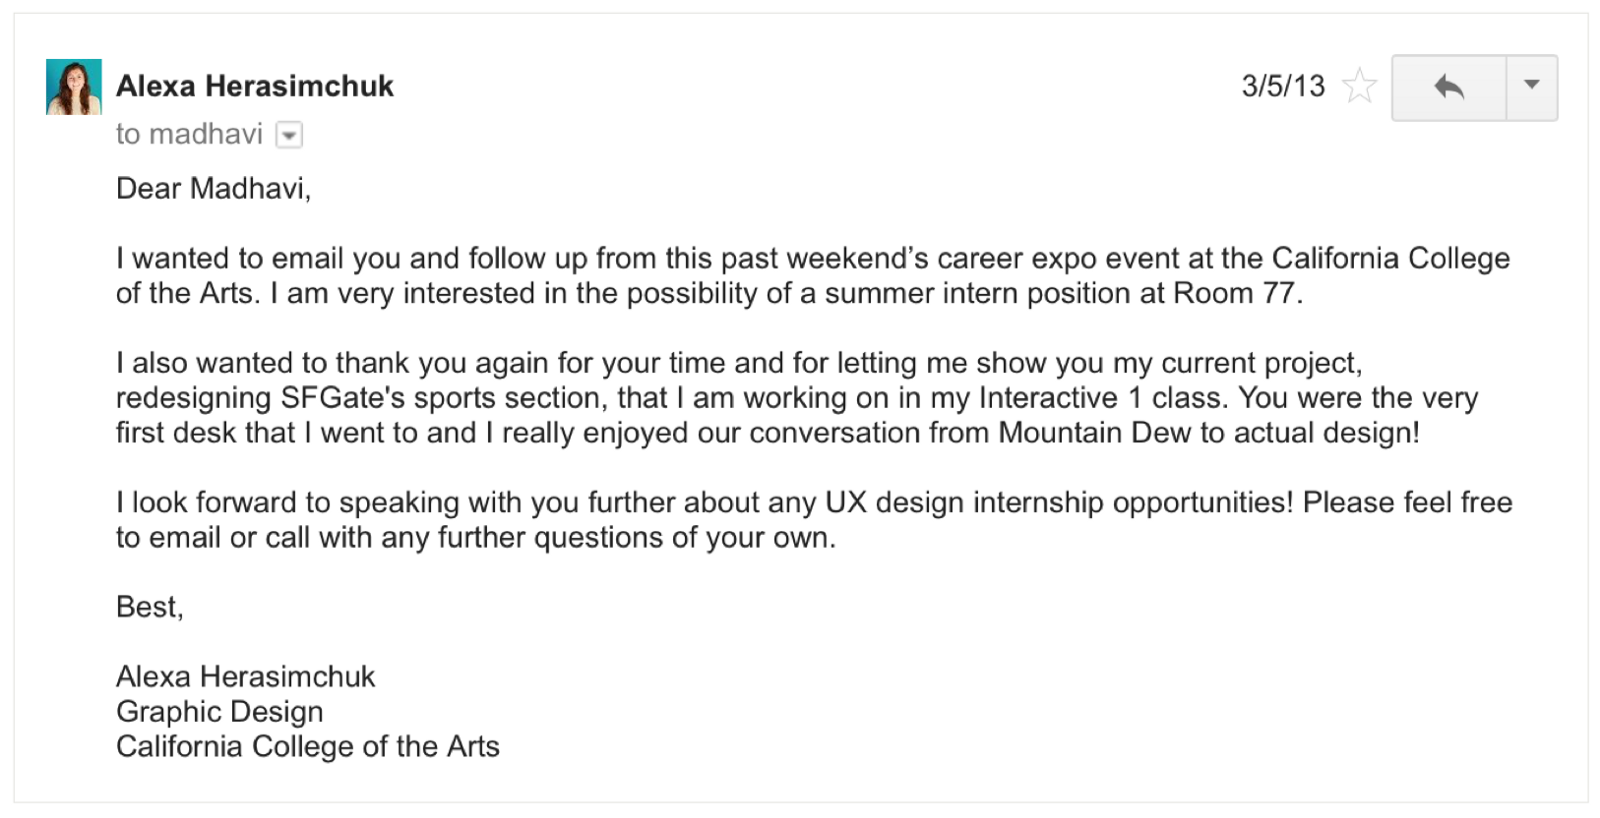 thank you for the time you in considering my application